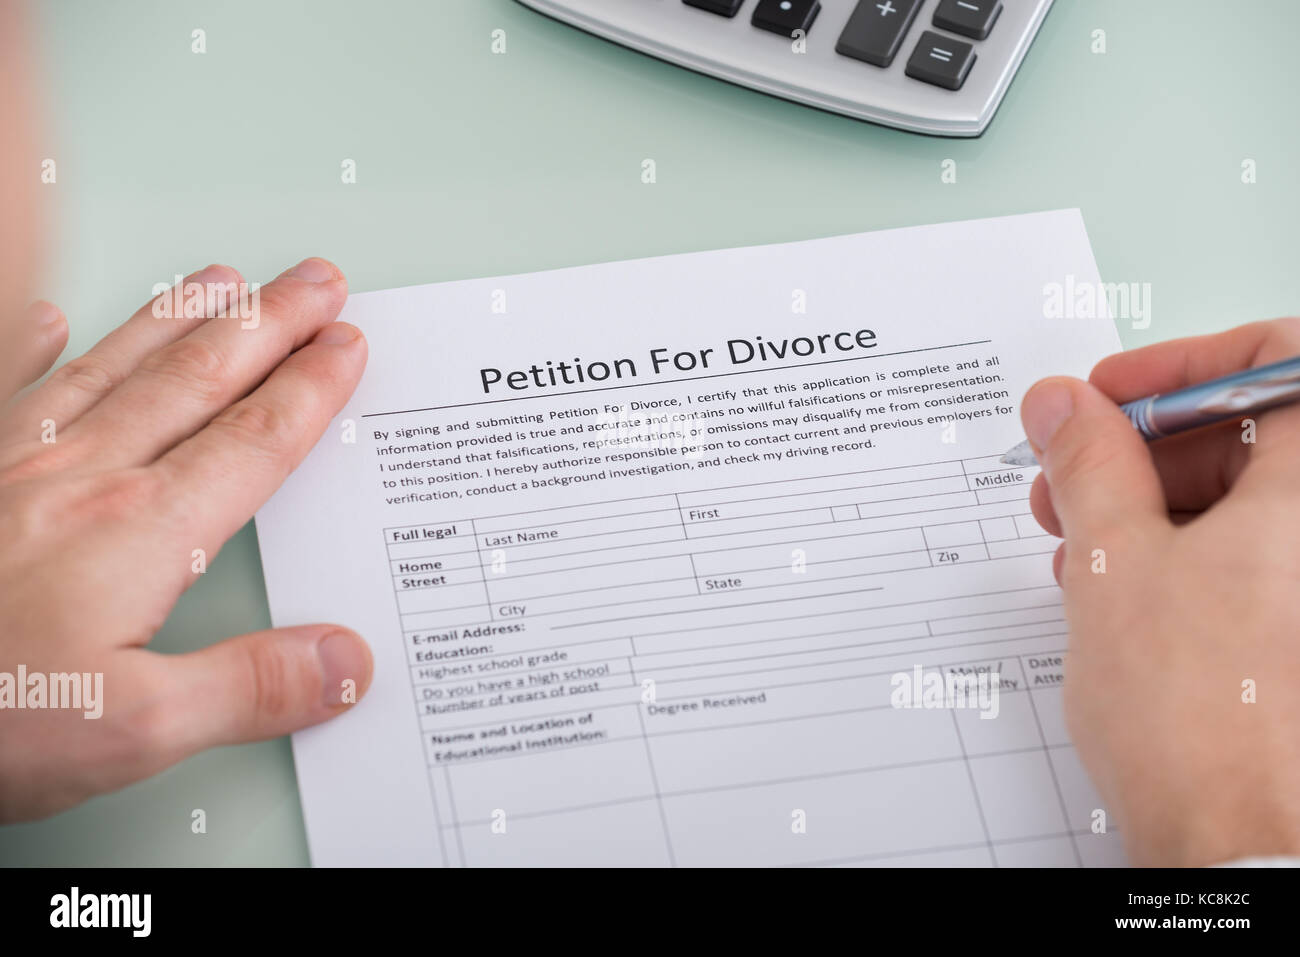 Close-up Of Person Hand Over Petition For Divorce Form - Stock Image